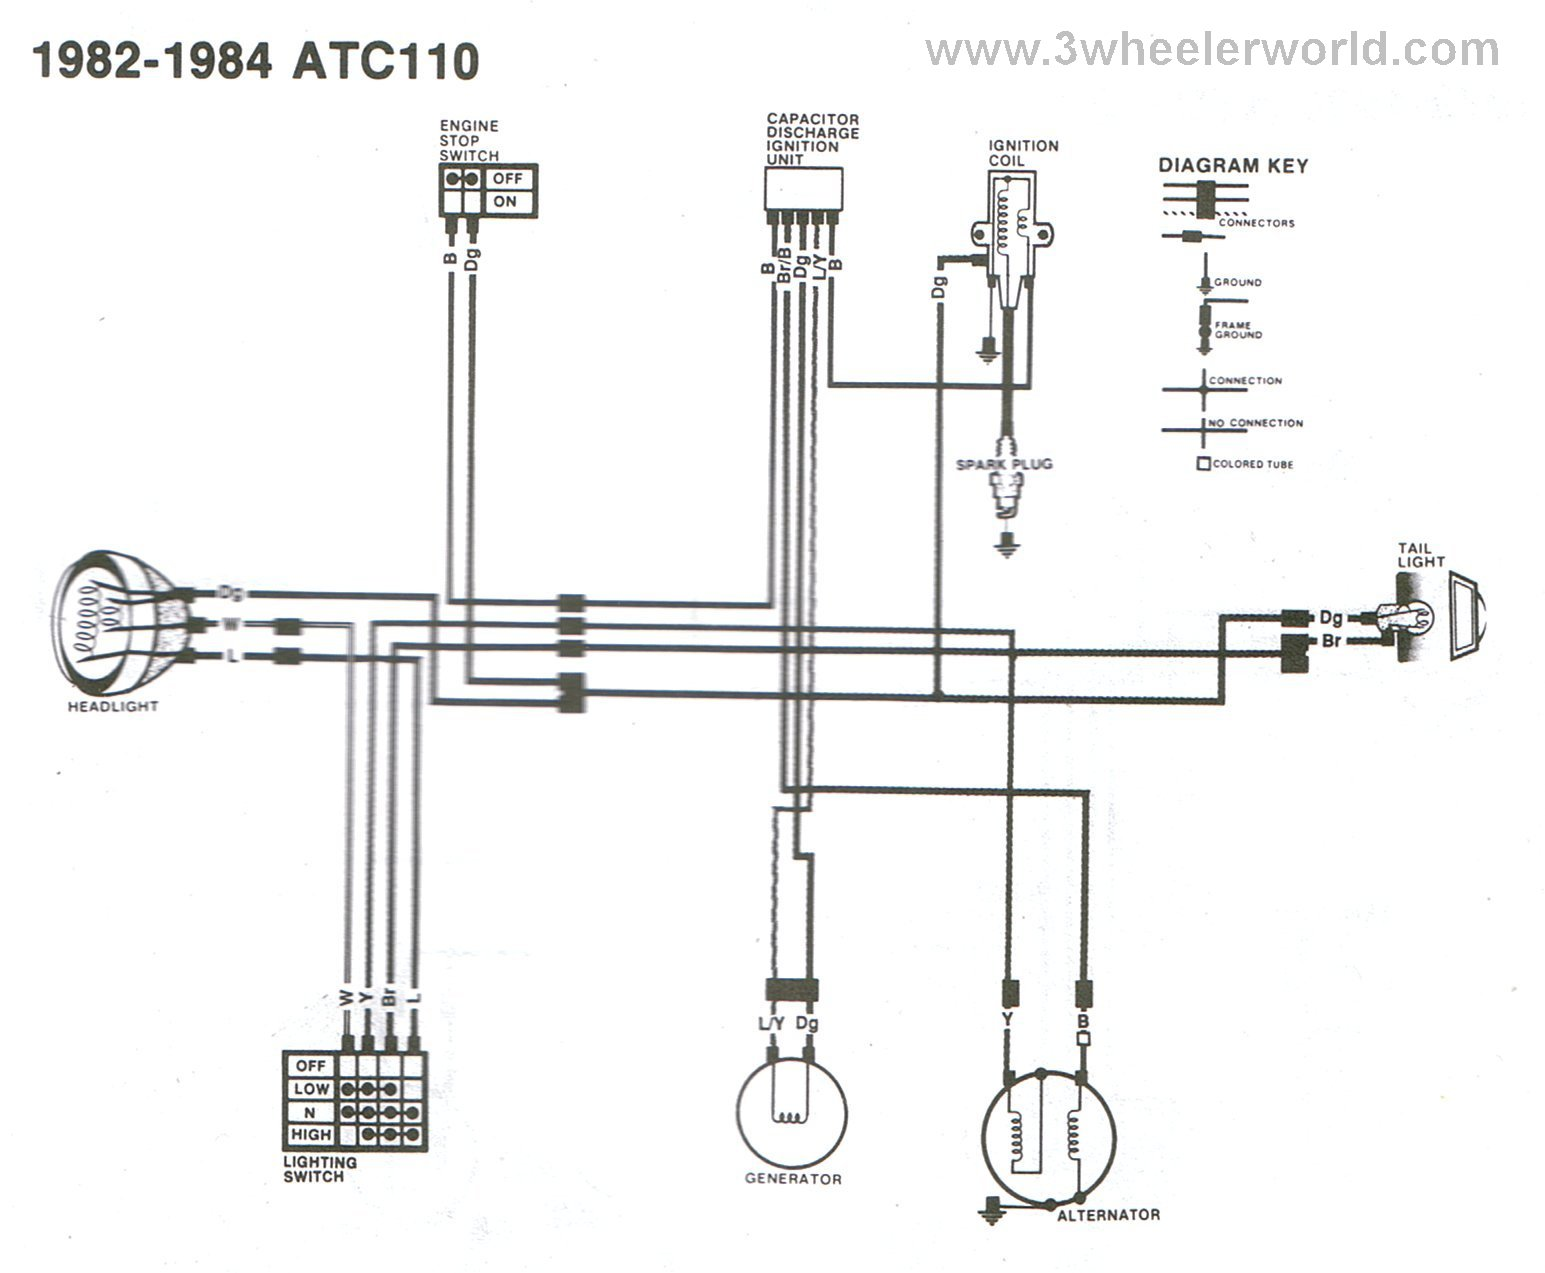 ATC110x82Thru84 3 wheeler world tech help honda wiring diagrams honda atc 70 wiring harness at bakdesigns.co